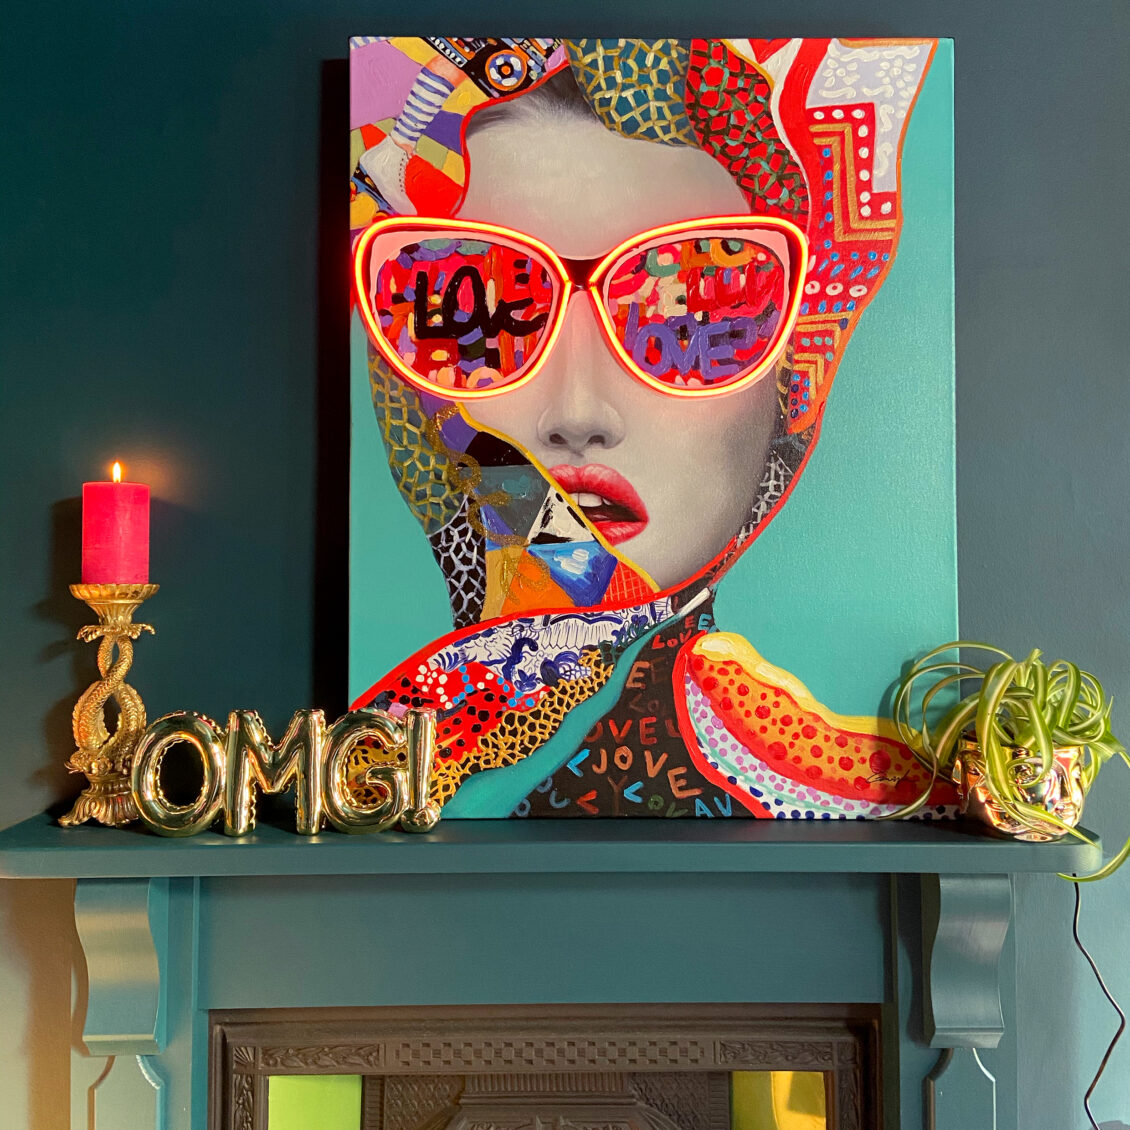 Gianna LED Neon Canvas Art £265. Ornate Leaping Fish Candle Holder £32.95. Gold OMG Balloon Ornament & Wall Décor £38.95.